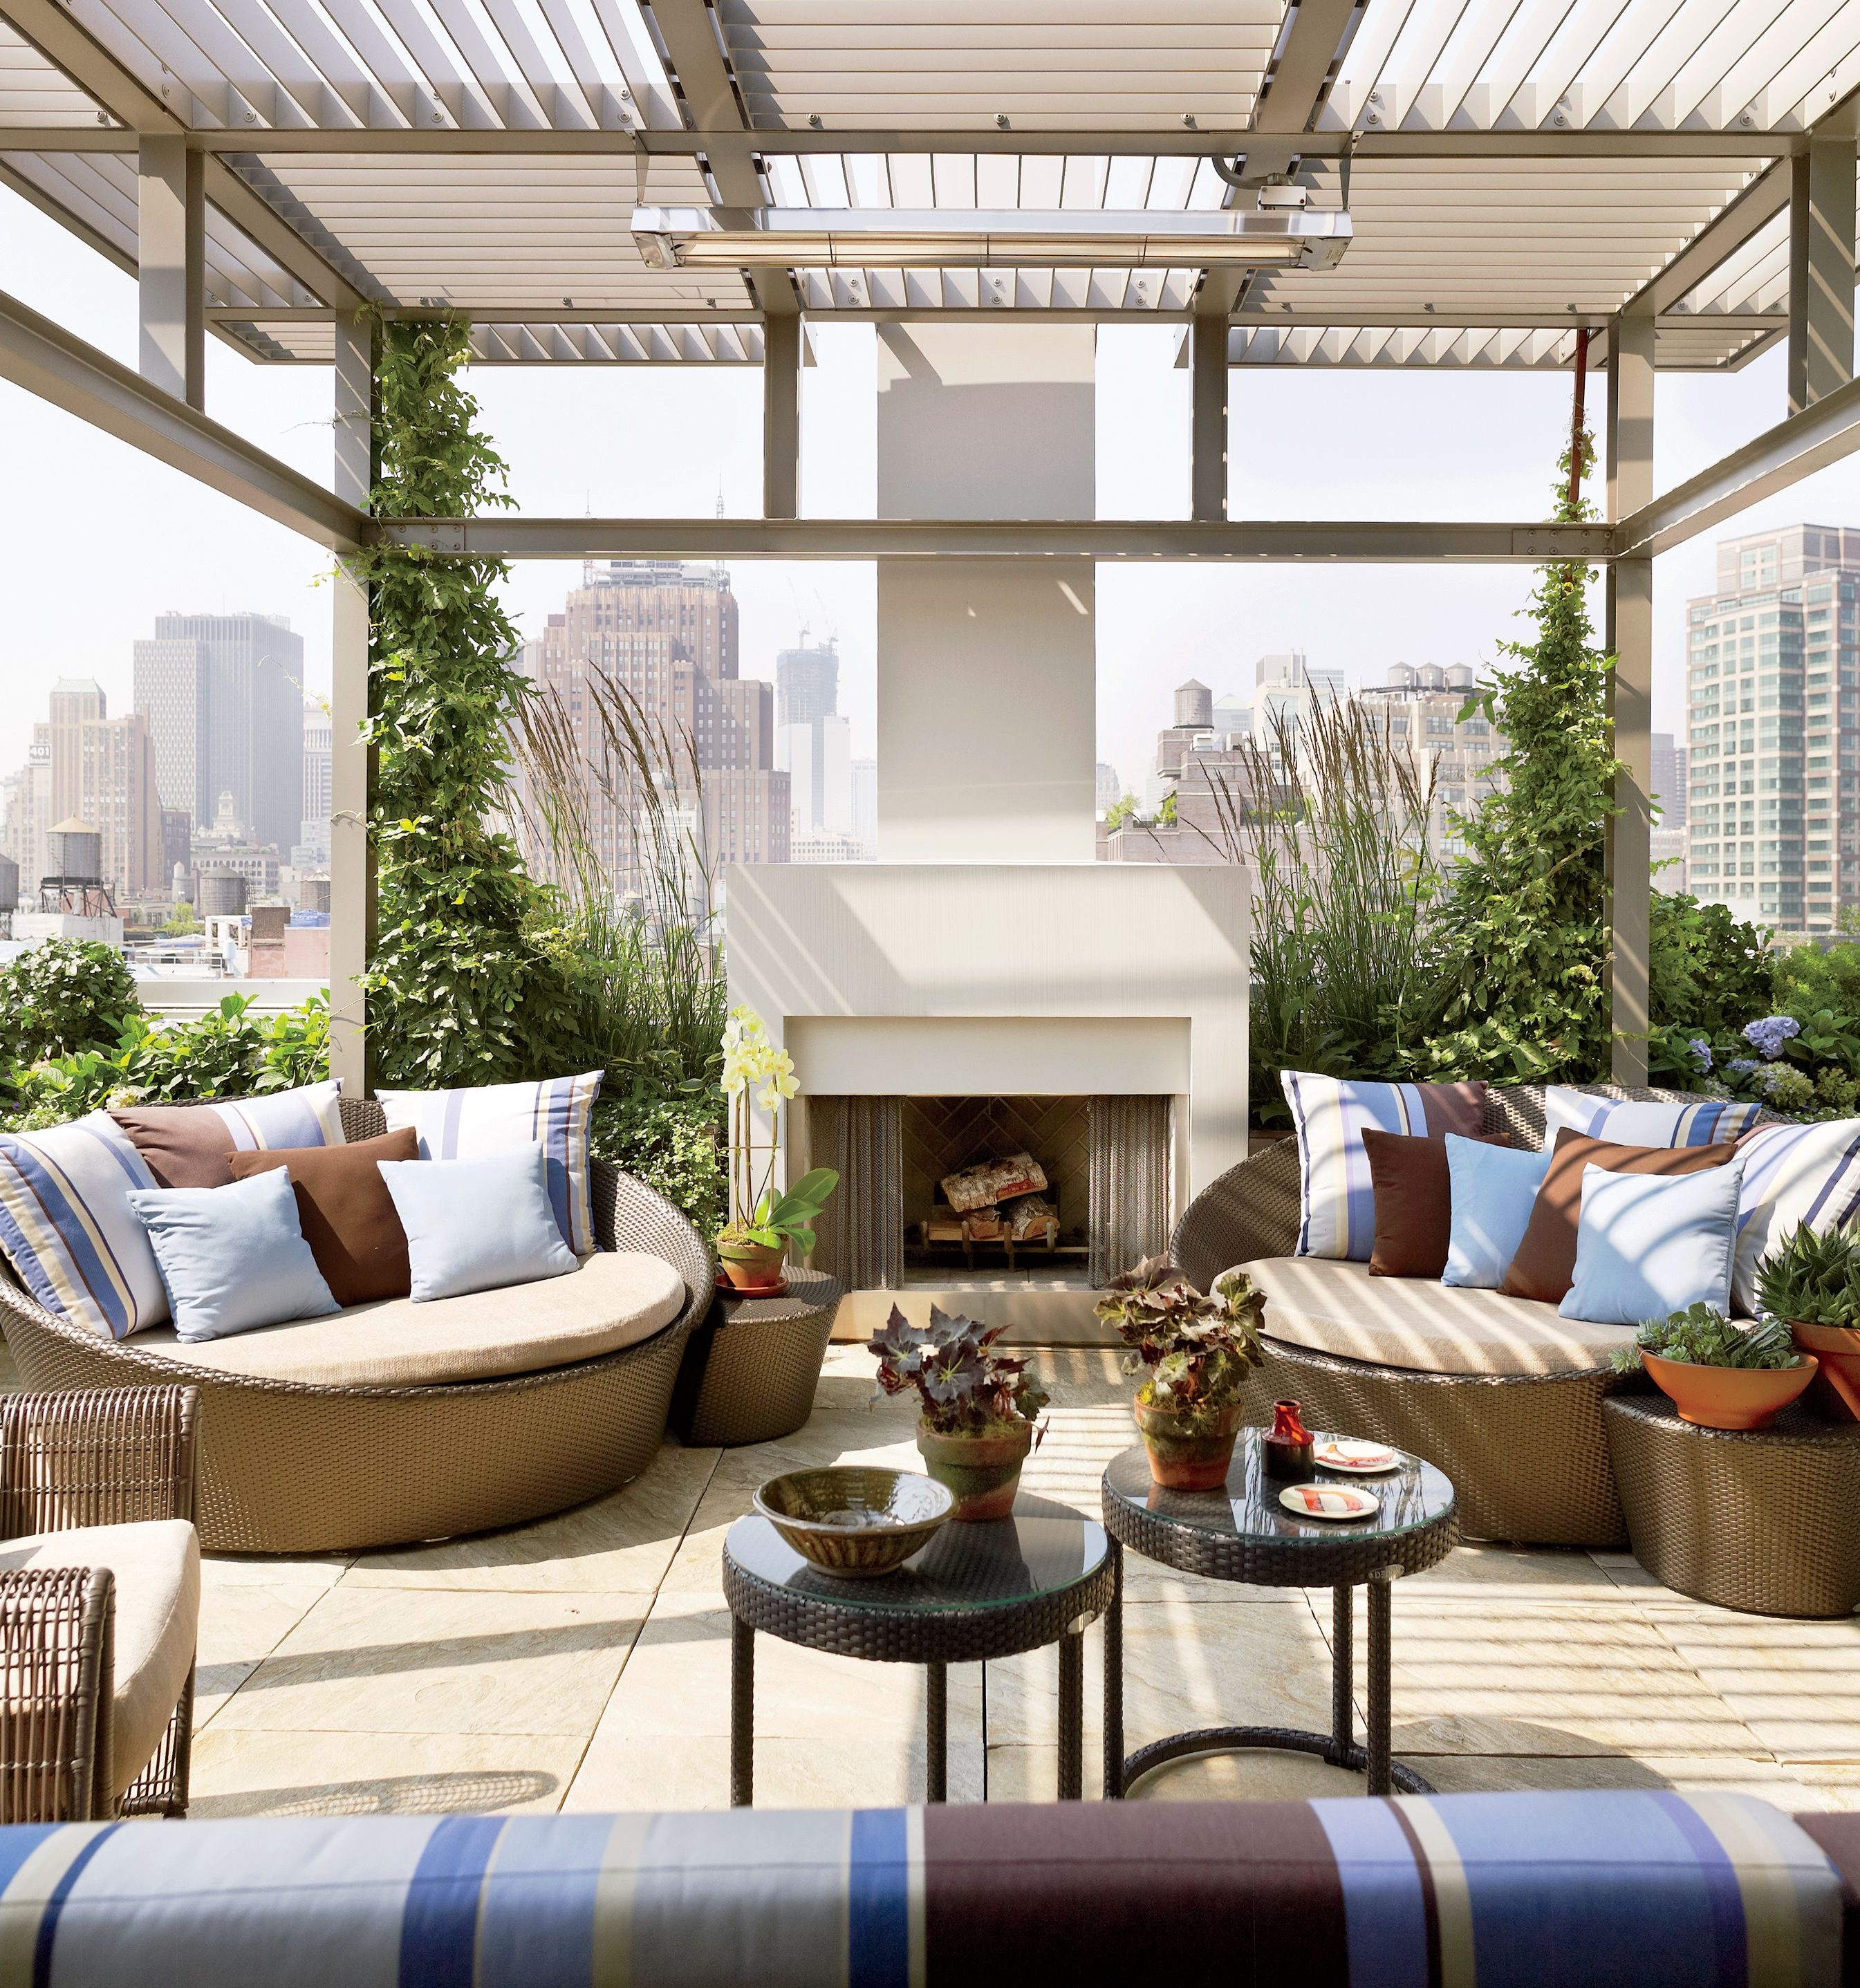 Refined rooftop hangout area with trellis and fireplaces